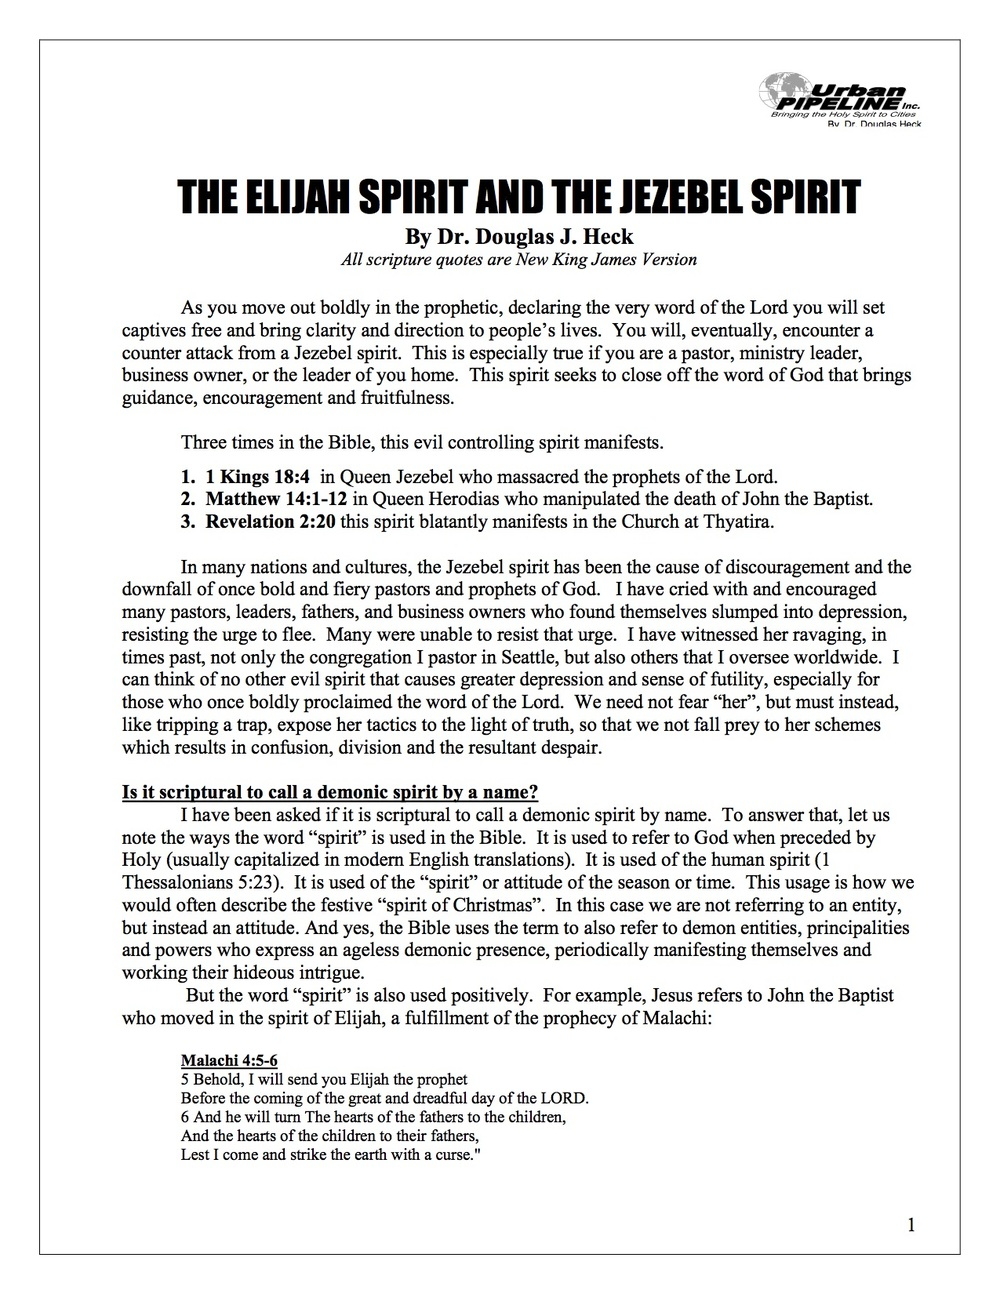 The Elijah Spirit and the Jezebel Spirit